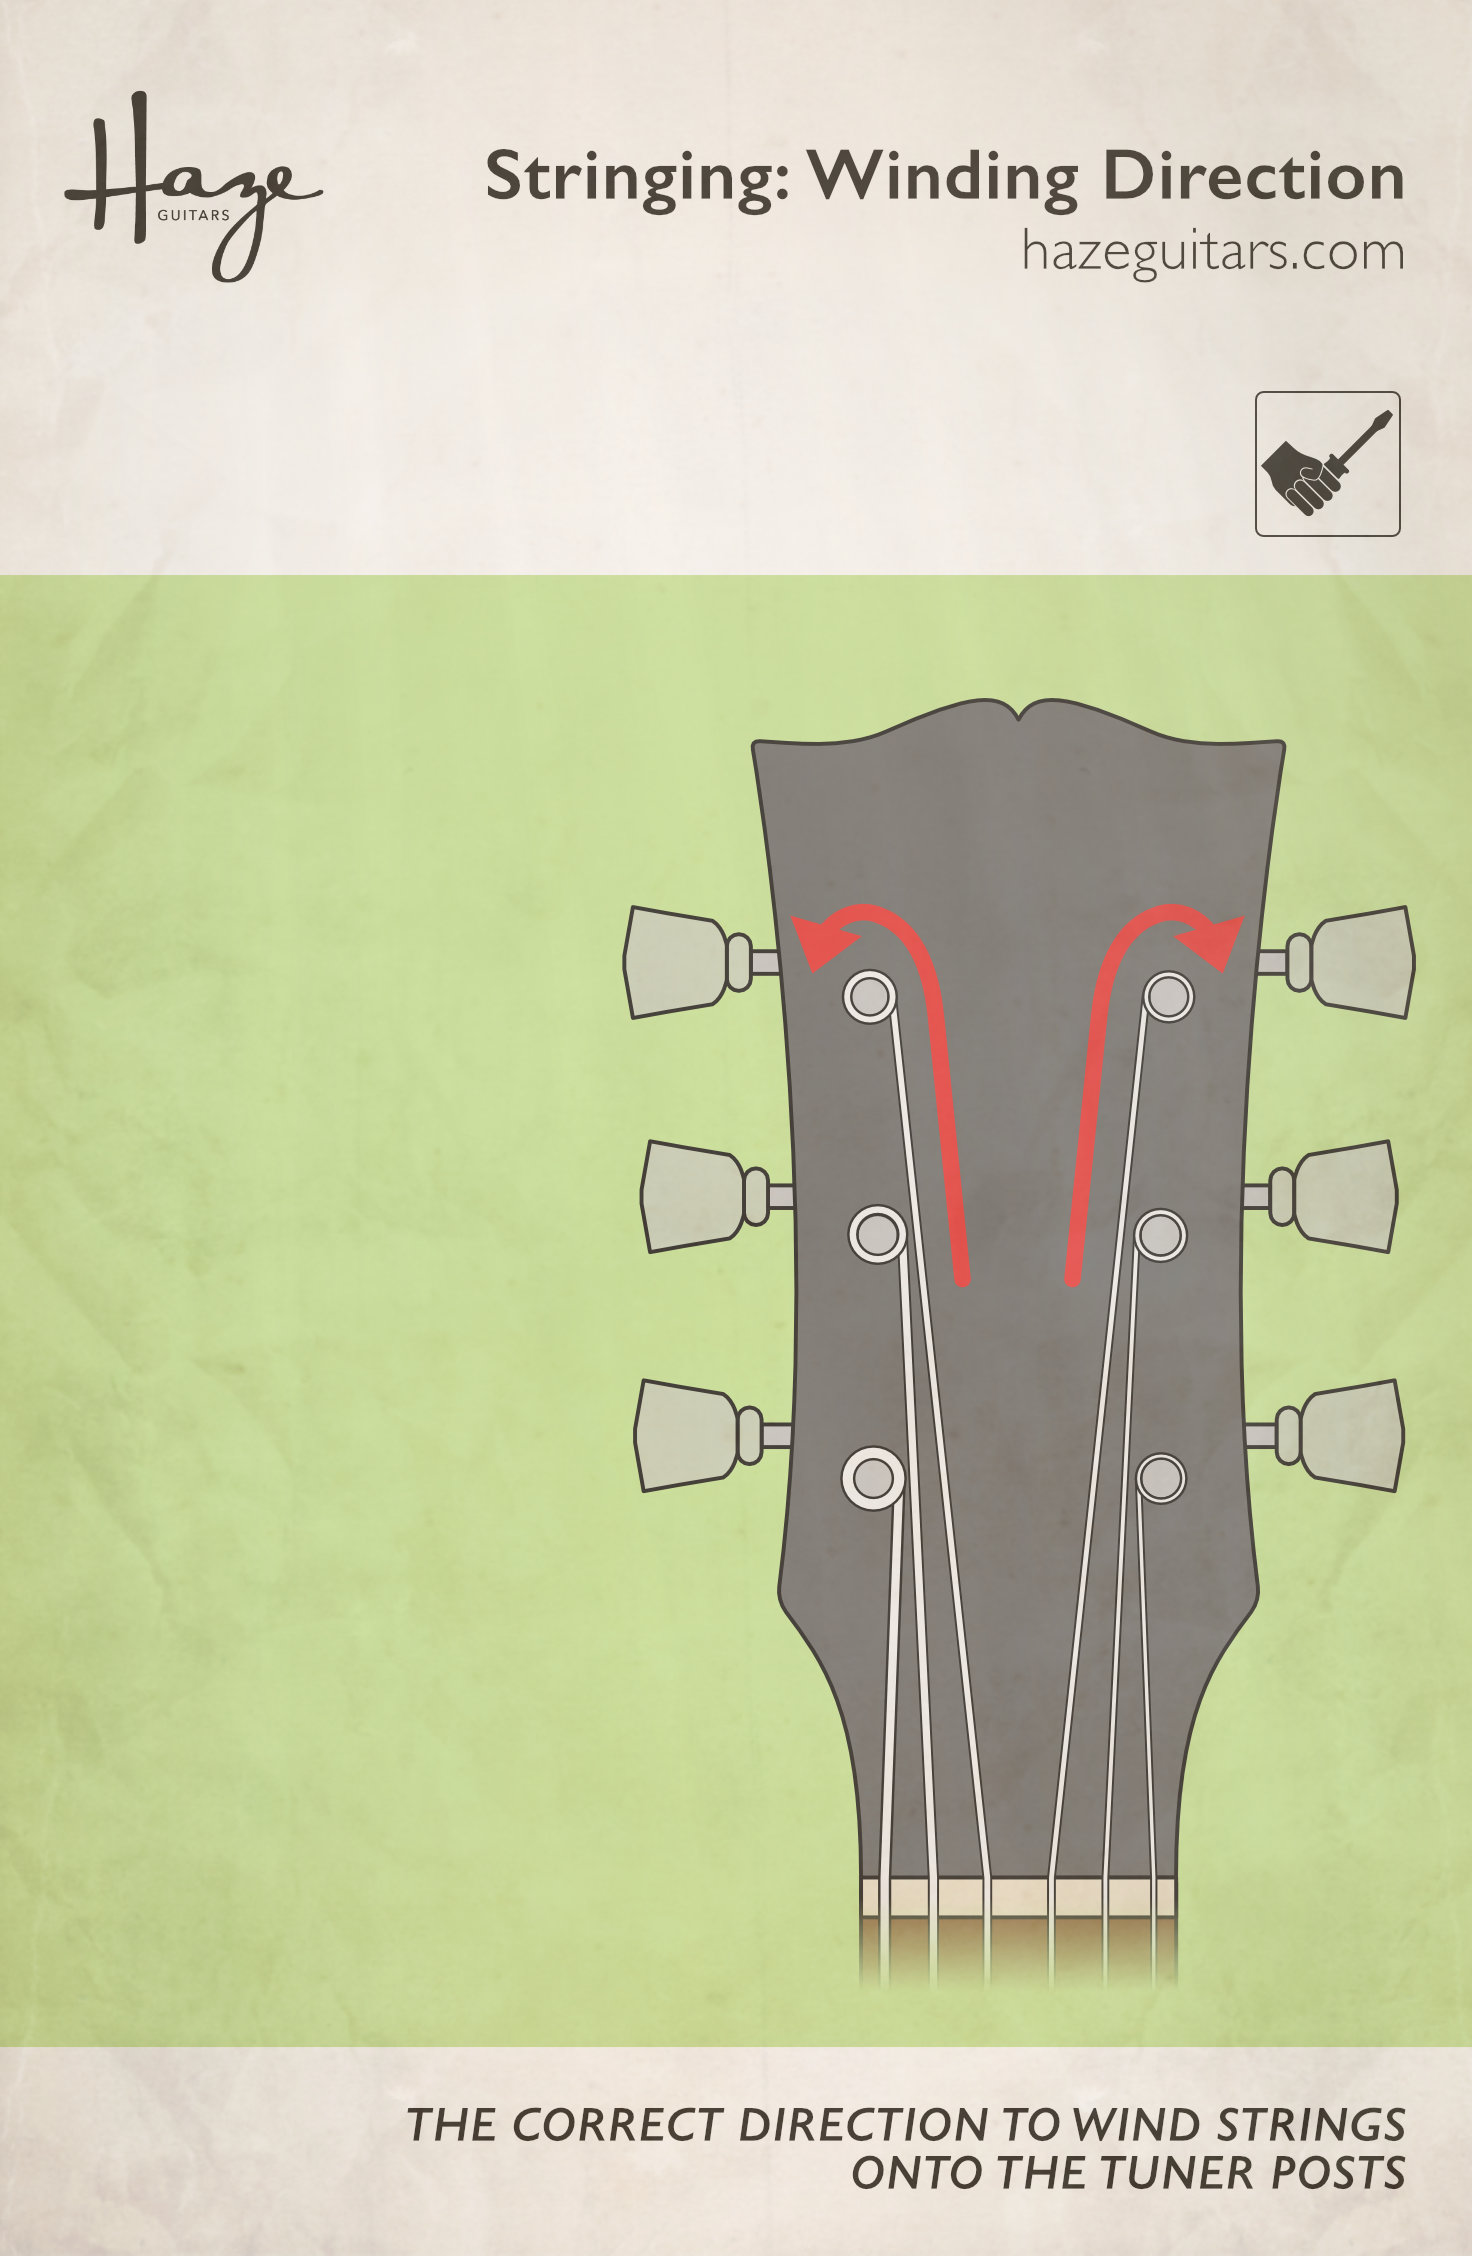 The correct direction to wind string onto a guitar tuner post